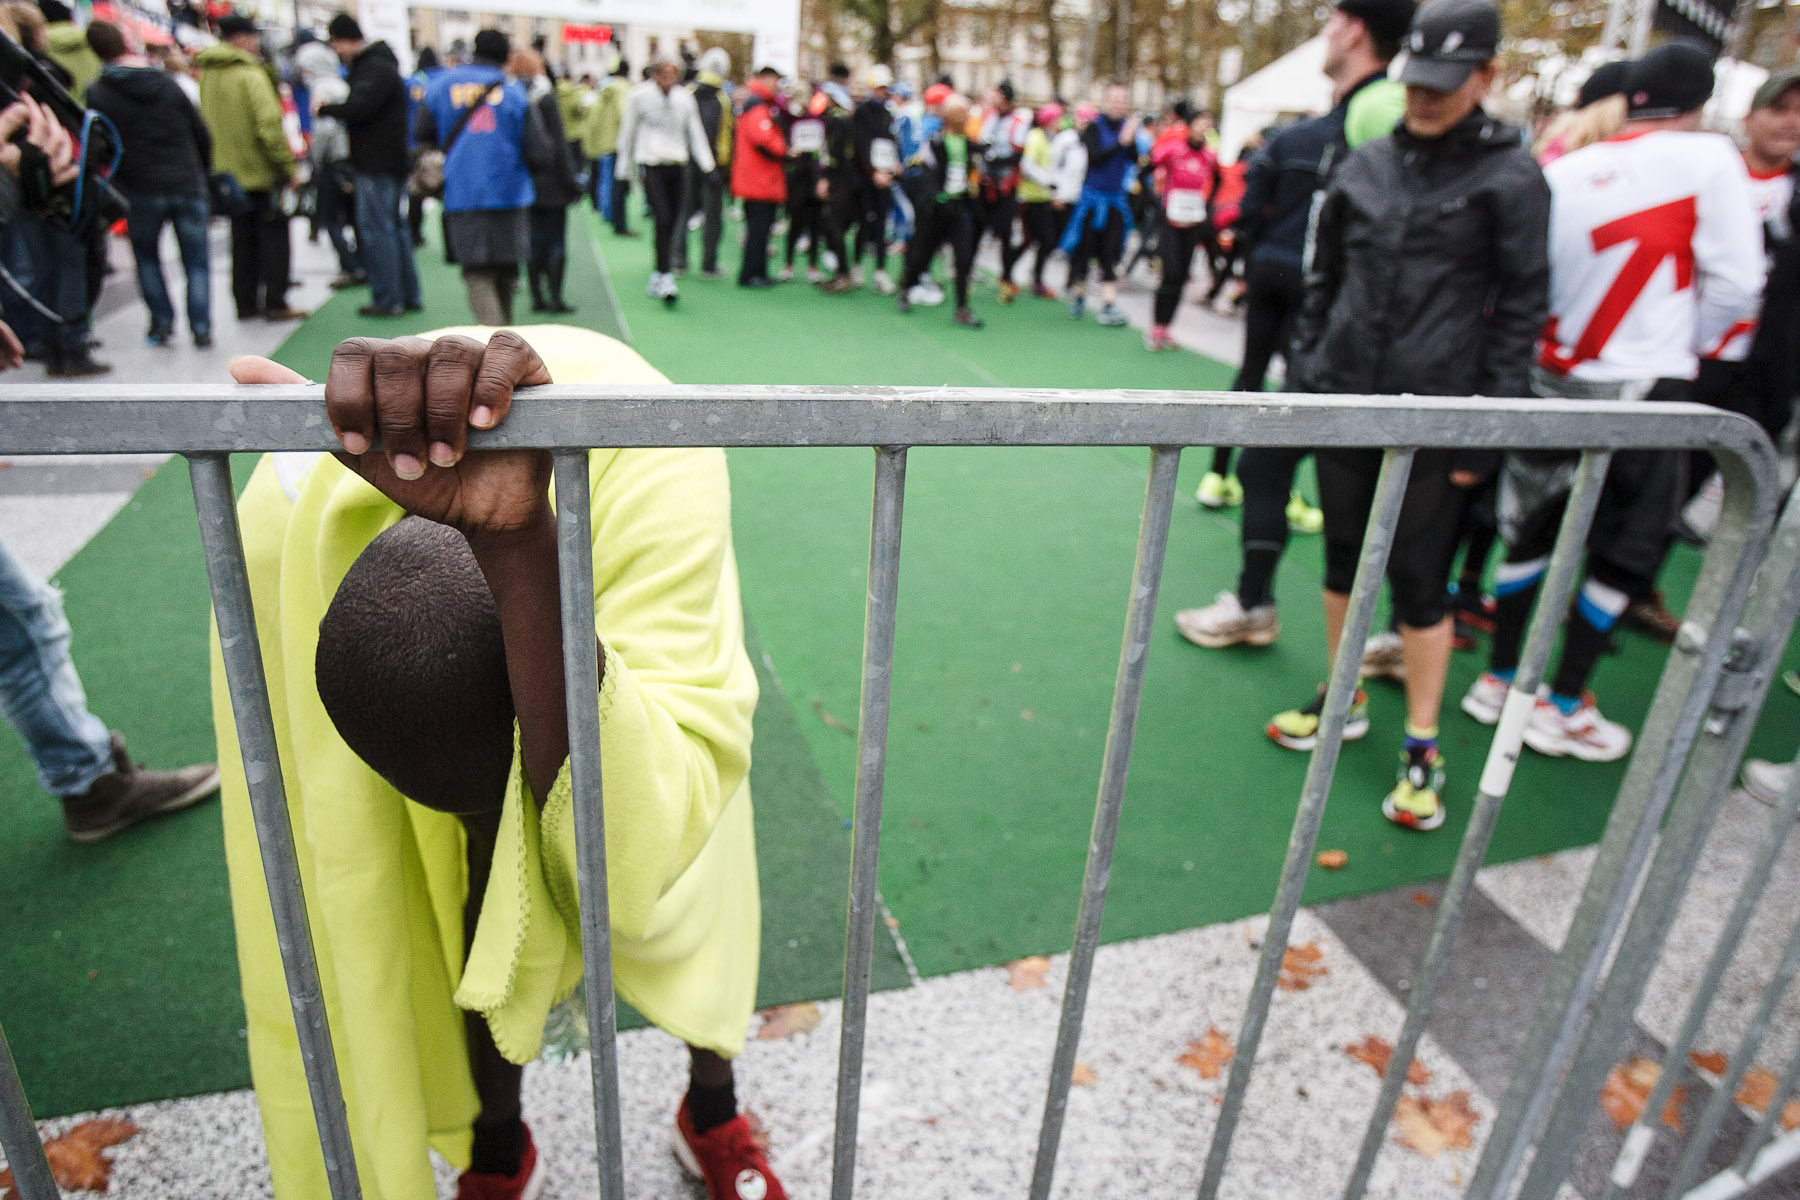 Daniel Chepyegon of Uganda rest after the 17th International Ljubljana Marathon on Oct 28, 2012 in Ljubljana, Slovenia.